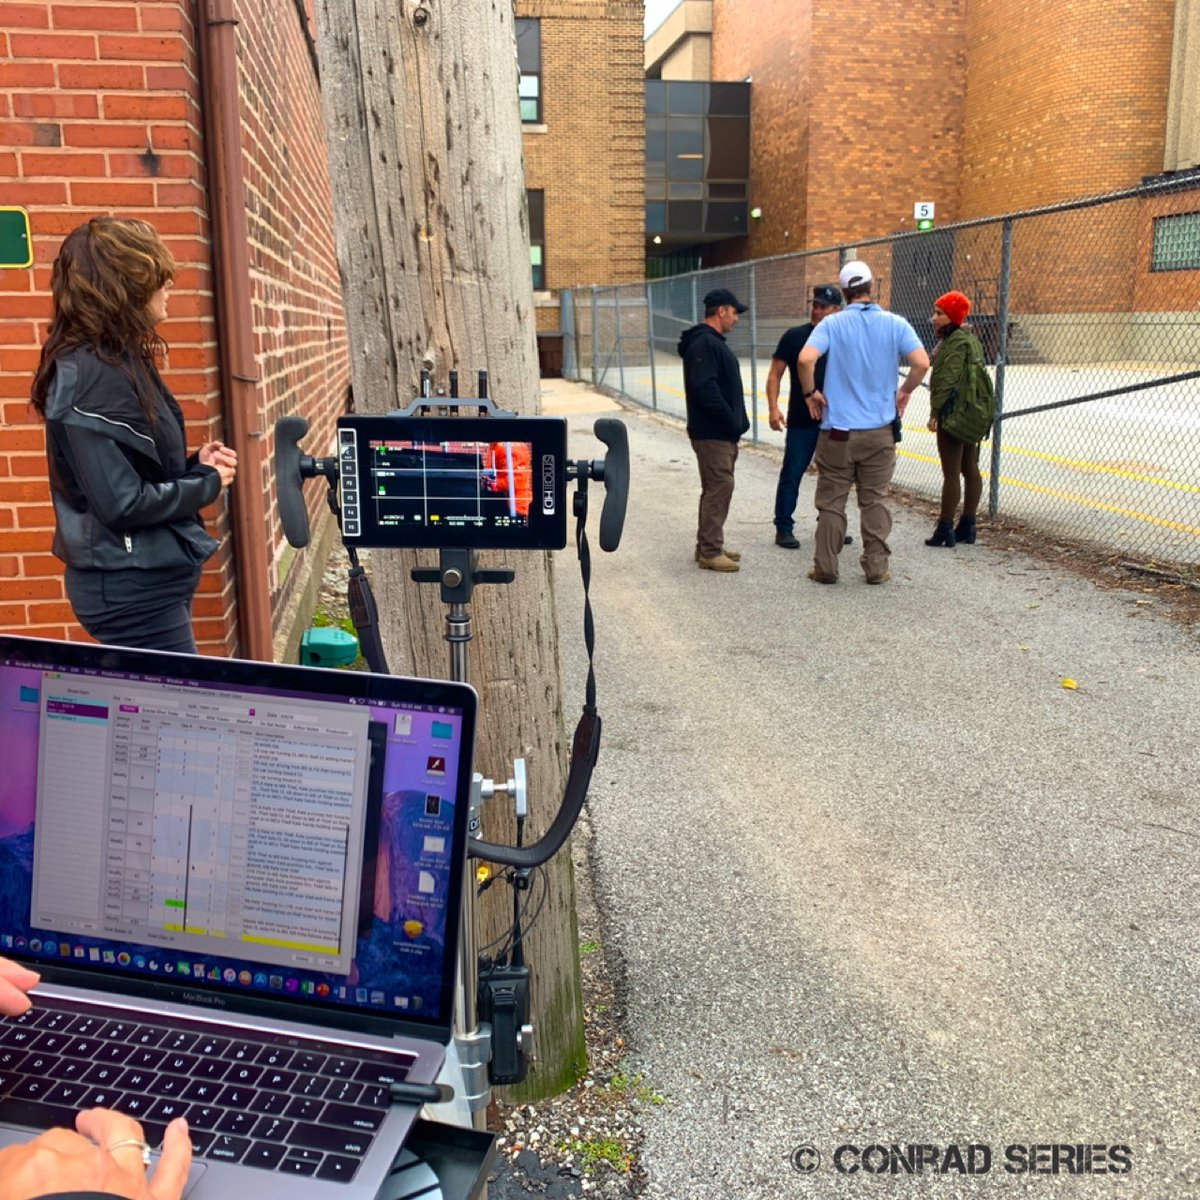 A pleasant brick building-lined street can quickly turn into a crime scene in the Conrad universe.  #conrad #conradseries #newseries #newshow #newtvshow #bingewatch #copdrama #dramaseries #womeninfilm #artistswithautism #chicagoproduction #bts #behindthescenes